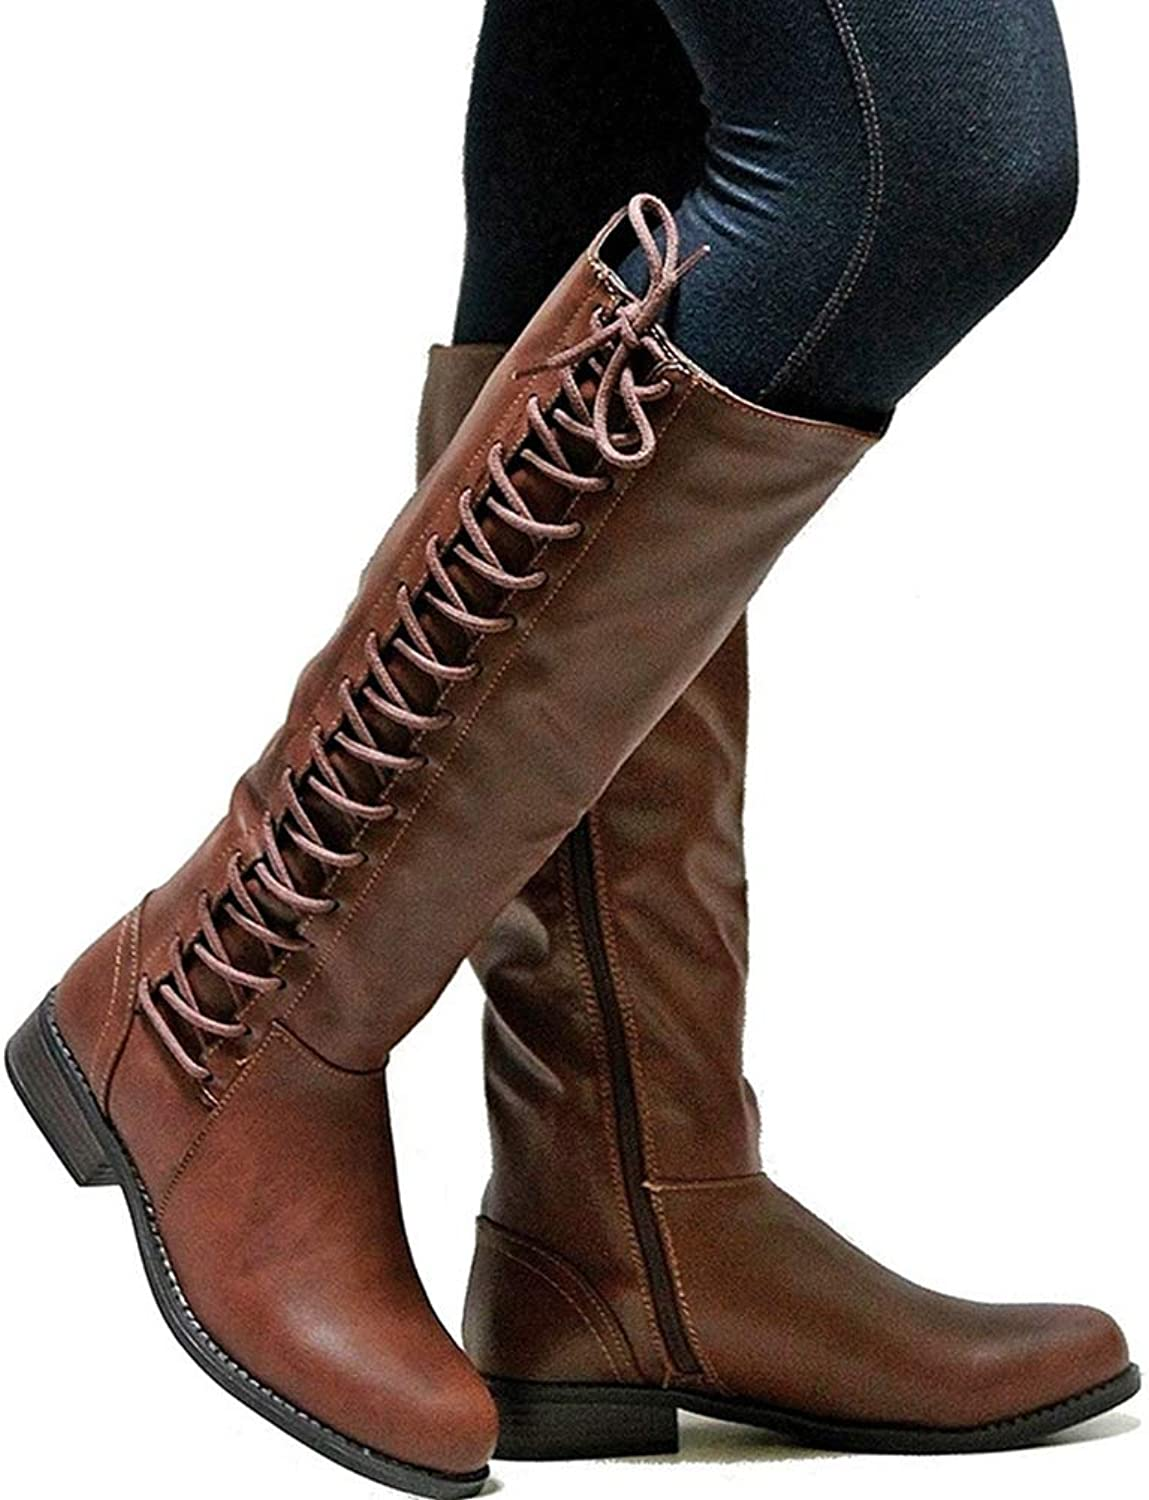 Womens Vintage Autumn Winter Round Toe Lac- Up Square Low Heel Military Riding Combat Martin Mid Calf Boots